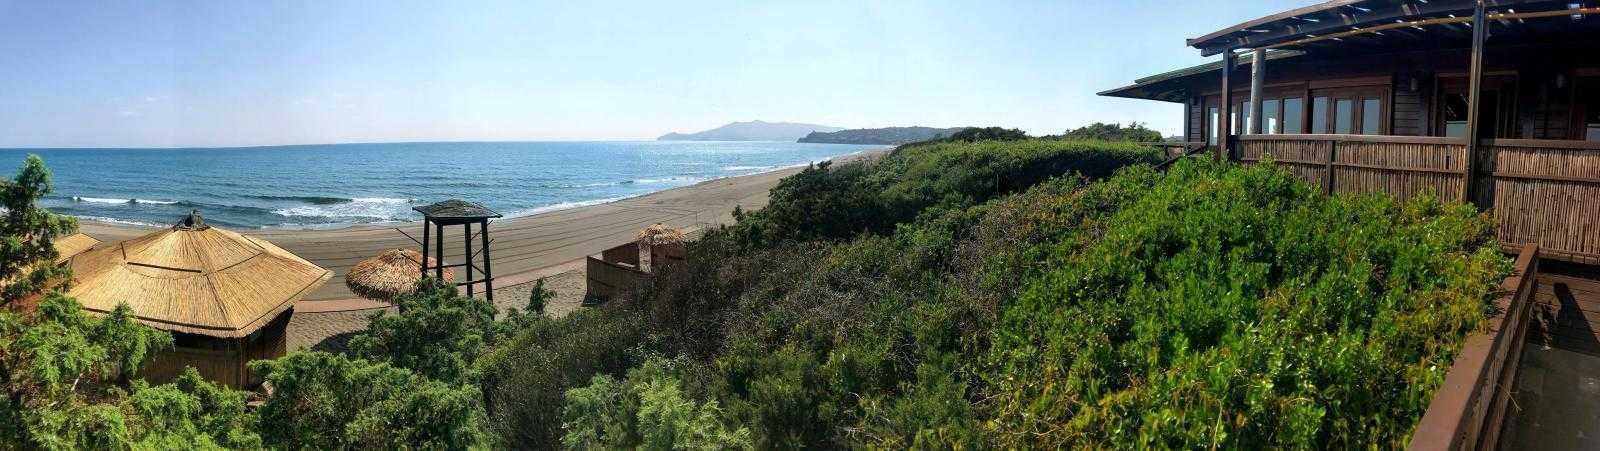 32104832_1984936928246415_9208030594062090240_o Spiagge in Maremma Bed and breakfast a Capalbio